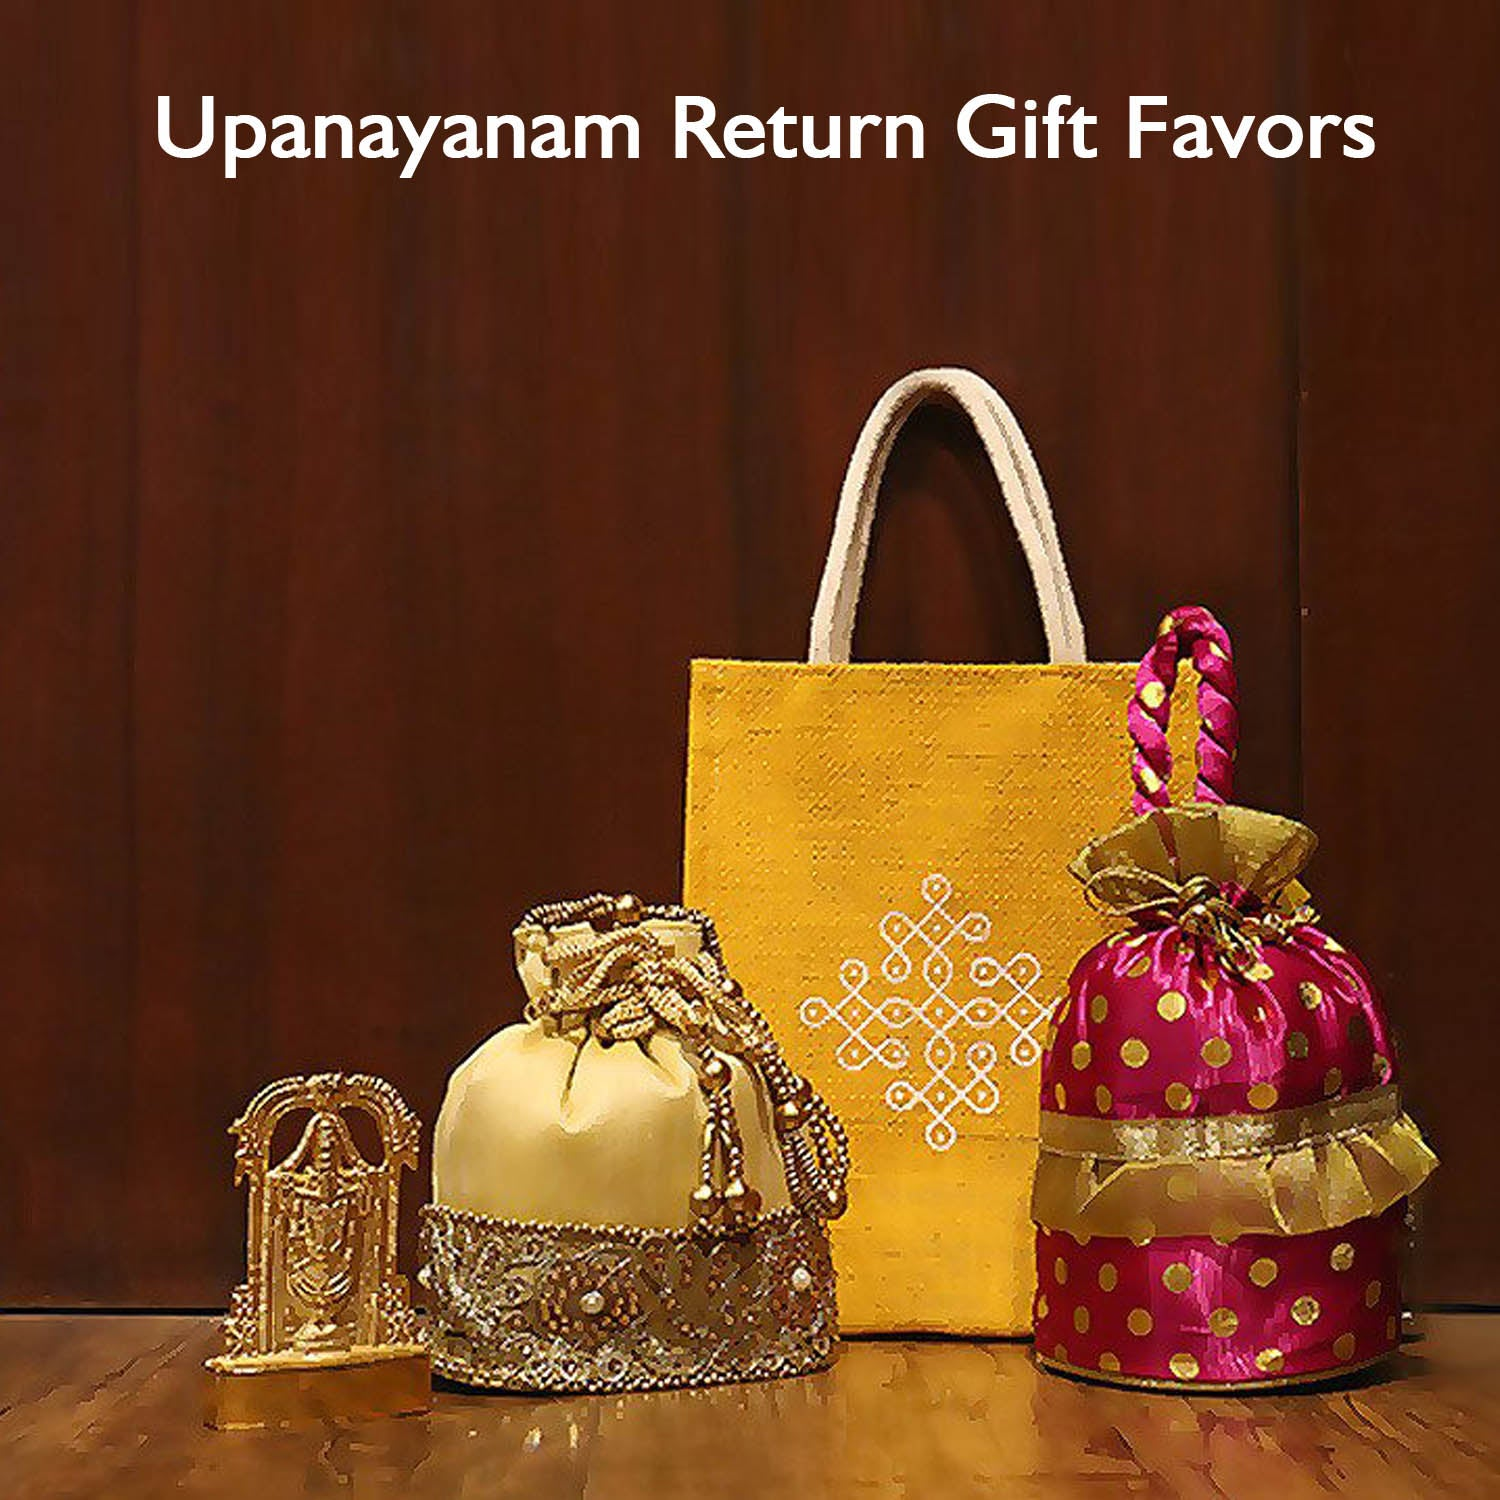 Upanayanam Return Gifts